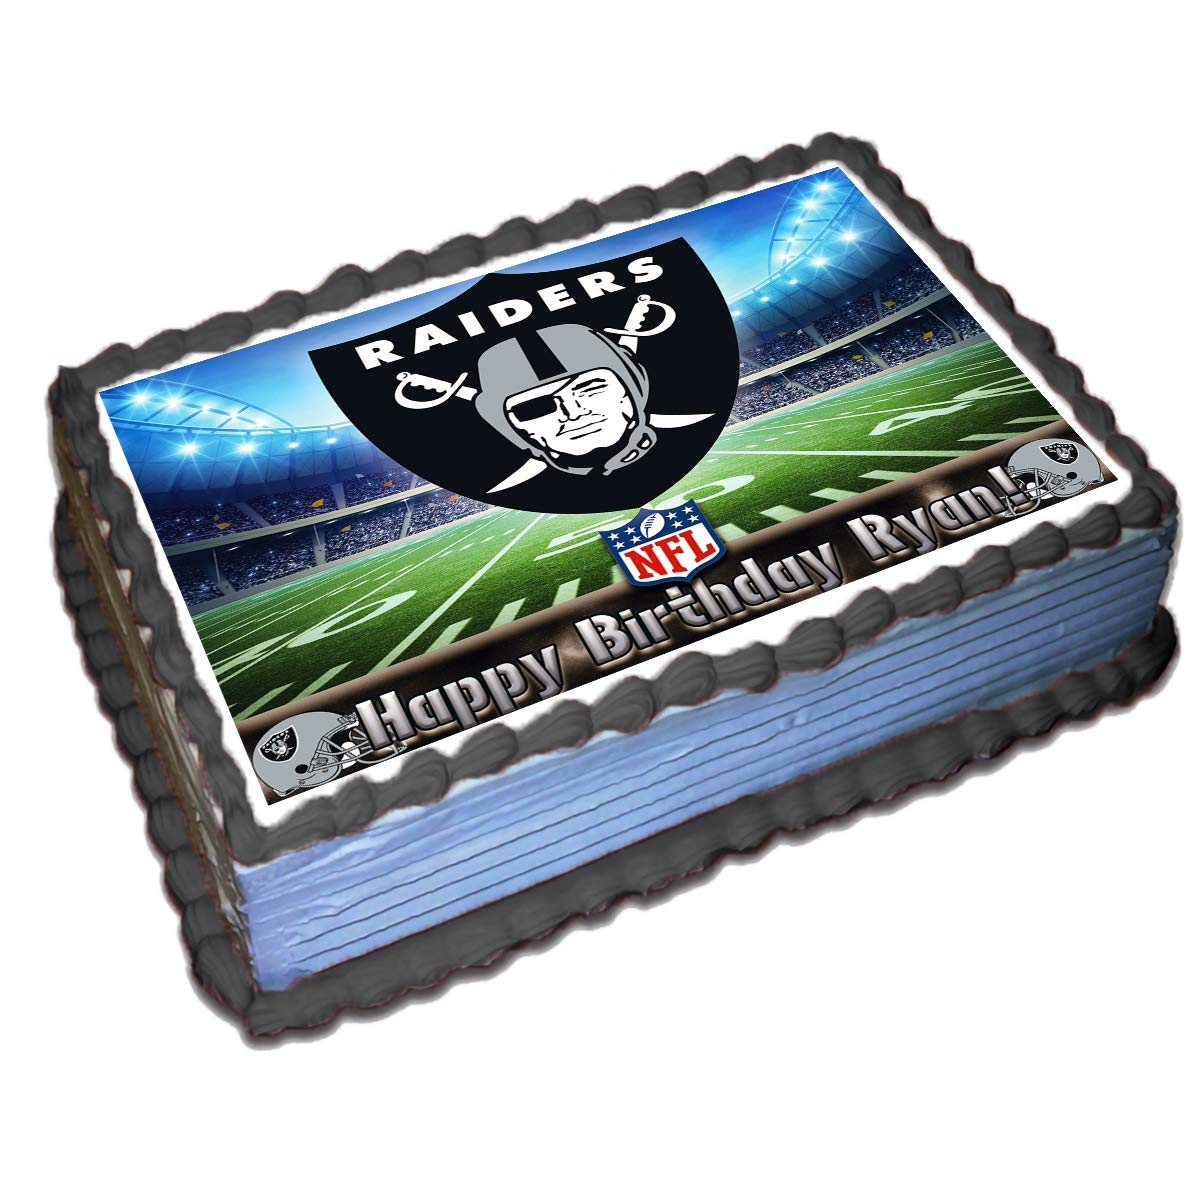 Magnificent Oakland Raiders Nfl Personalized Cake Topper Icing Sugar Paper 1 4 Funny Birthday Cards Online Inifofree Goldxyz